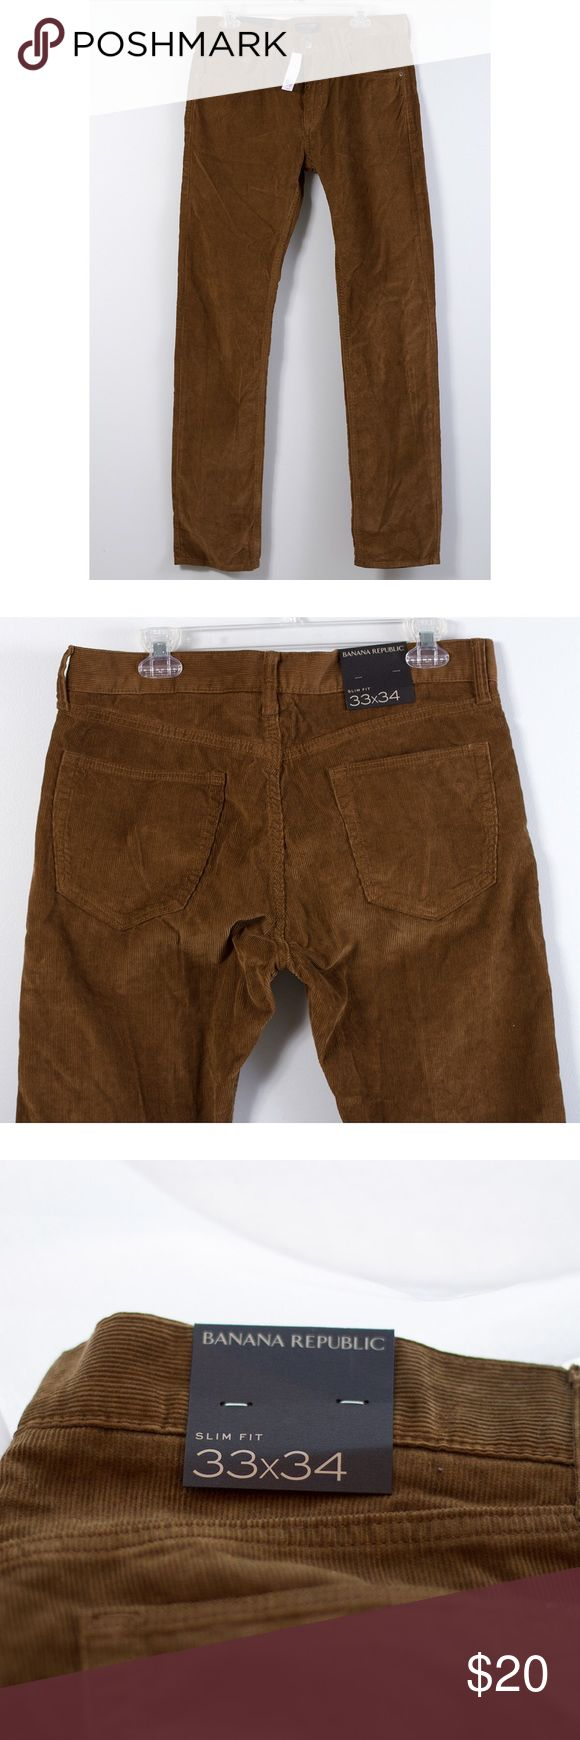 Banana Republic Men's Corduroy Pants ❗️PRICE FIRM Perfect color for fall!  Men's slim fit corduroy pants by Banana Republic.  Brand new with tags.  Men's size 33x34.  ‼️Price on attached tag is $70 so firm on price for this item. Thanks!‼️ Banana Republic Pants Corduroy